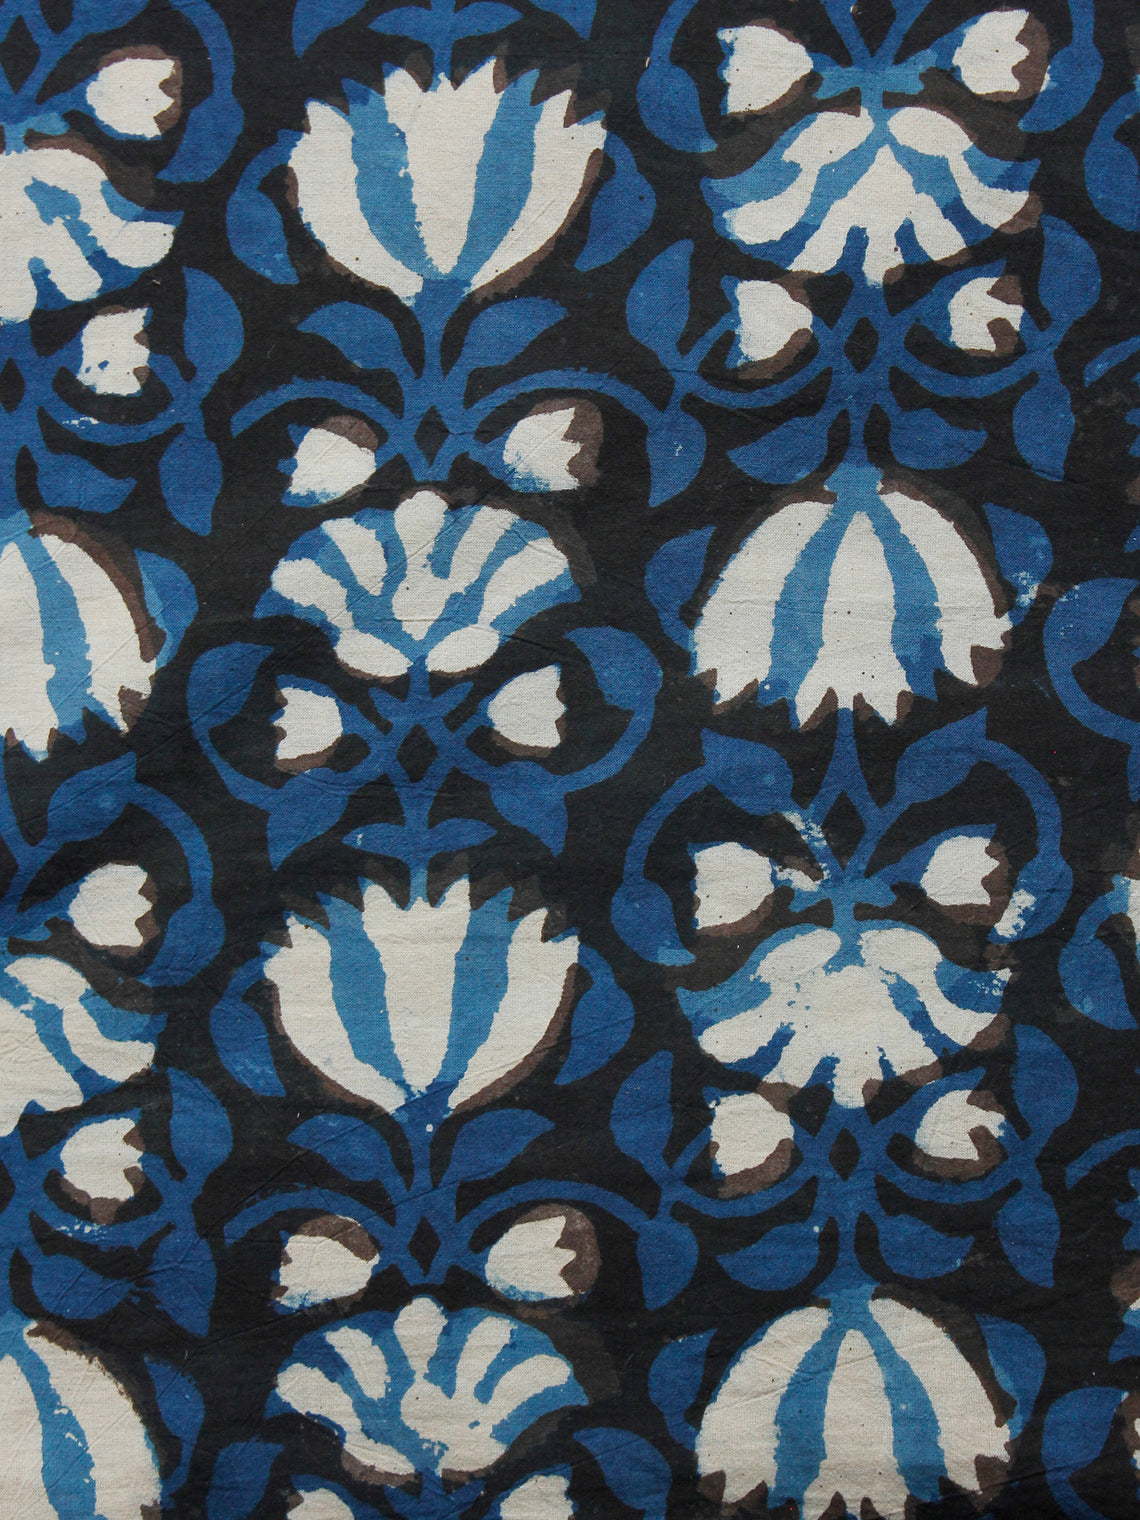 Black Indigo Ivory Hand Block Printed Cotton Fabric Per Meter - F001F1391